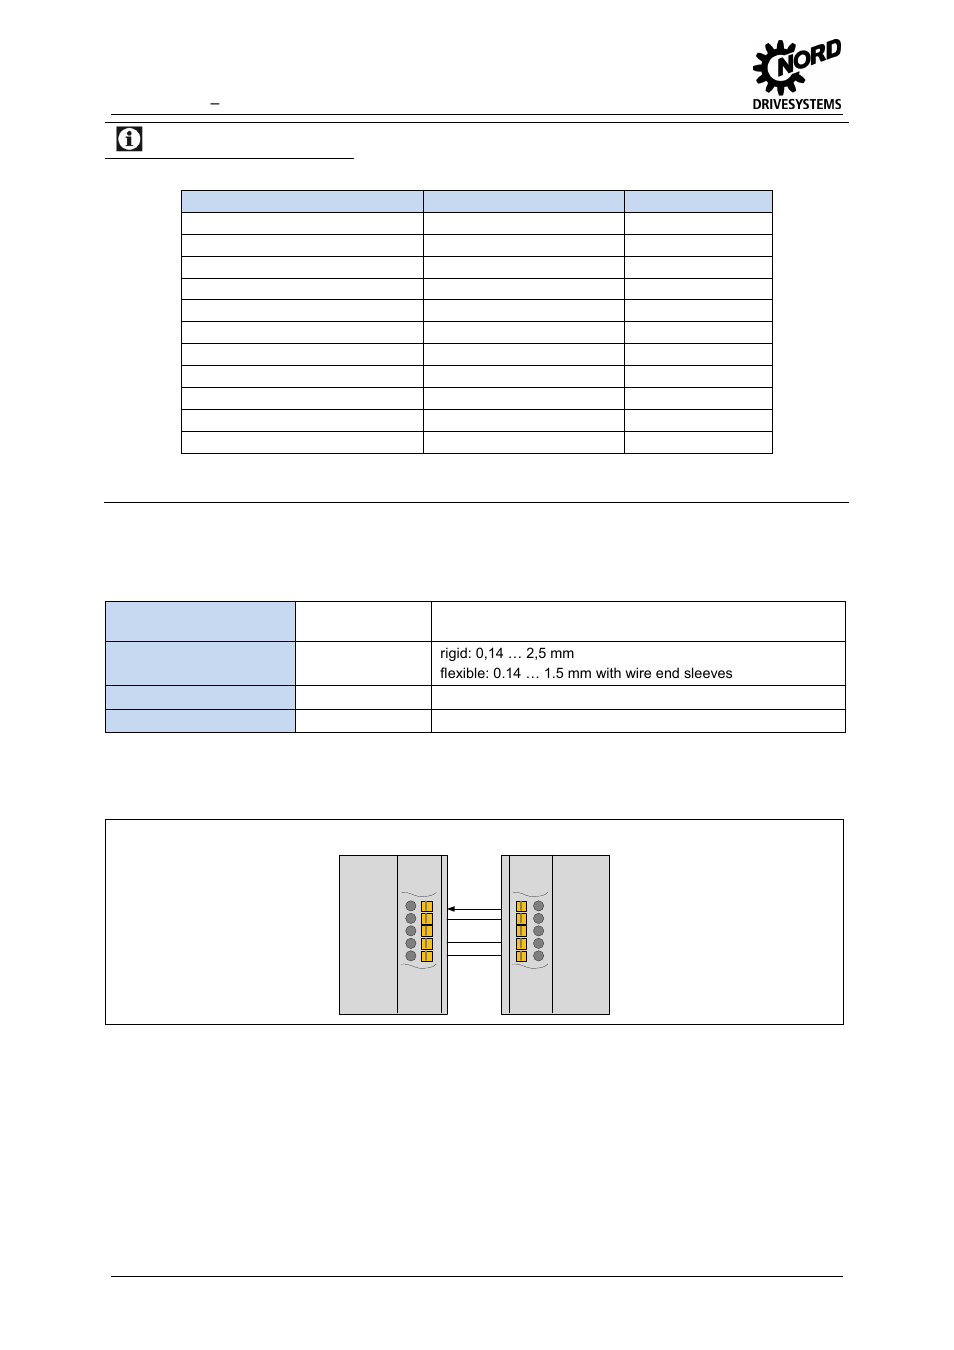 medium resolution of connections information m12 round plug connectors nord drivesystems ti 275281206 user manual